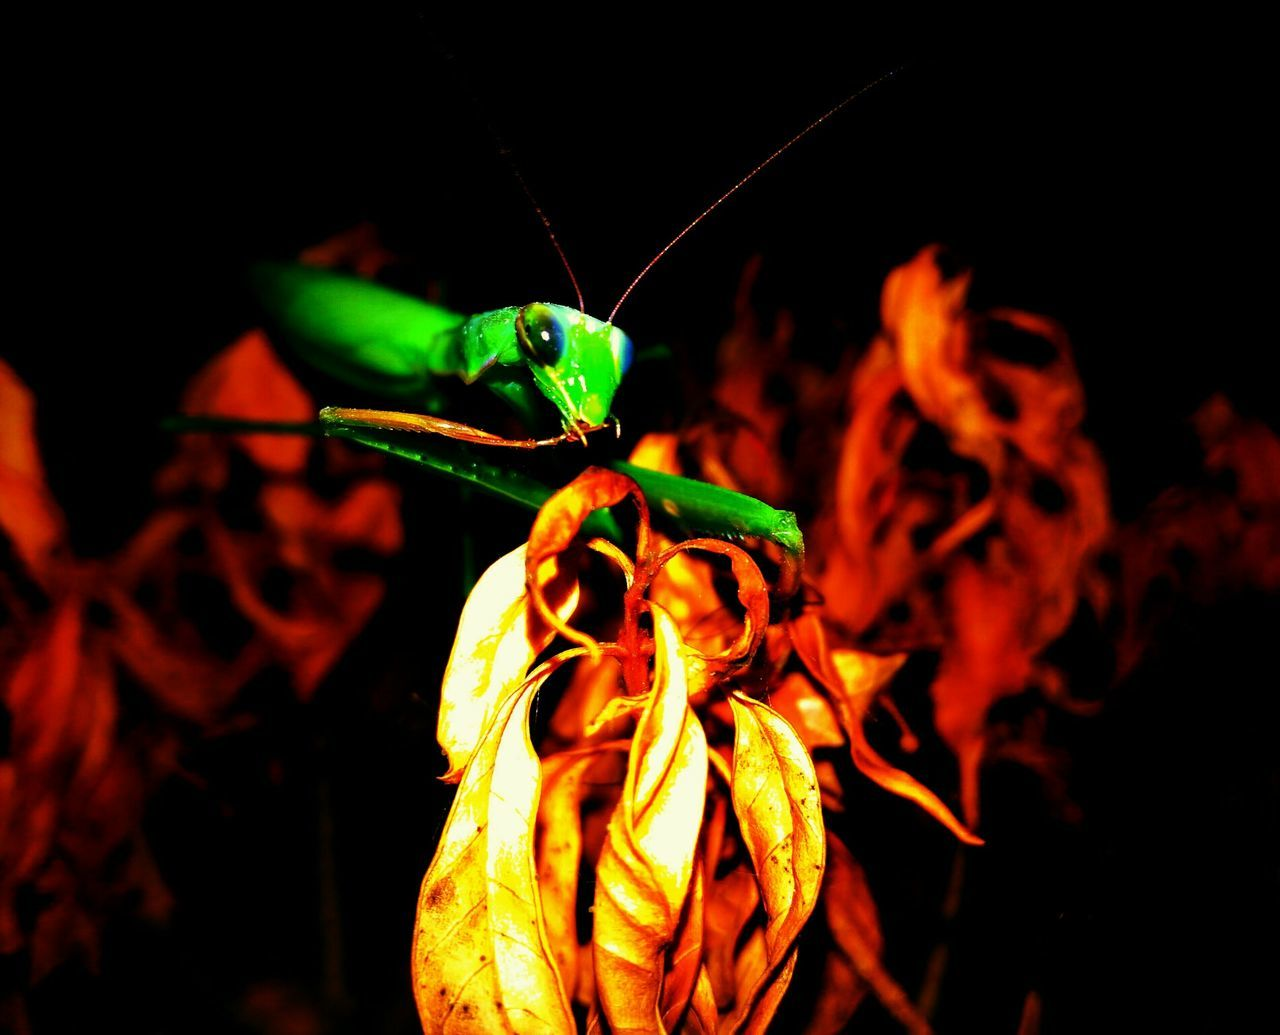 animals in the wild, animal themes, one animal, insect, night, no people, close-up, outdoors, leaf, nature, flower